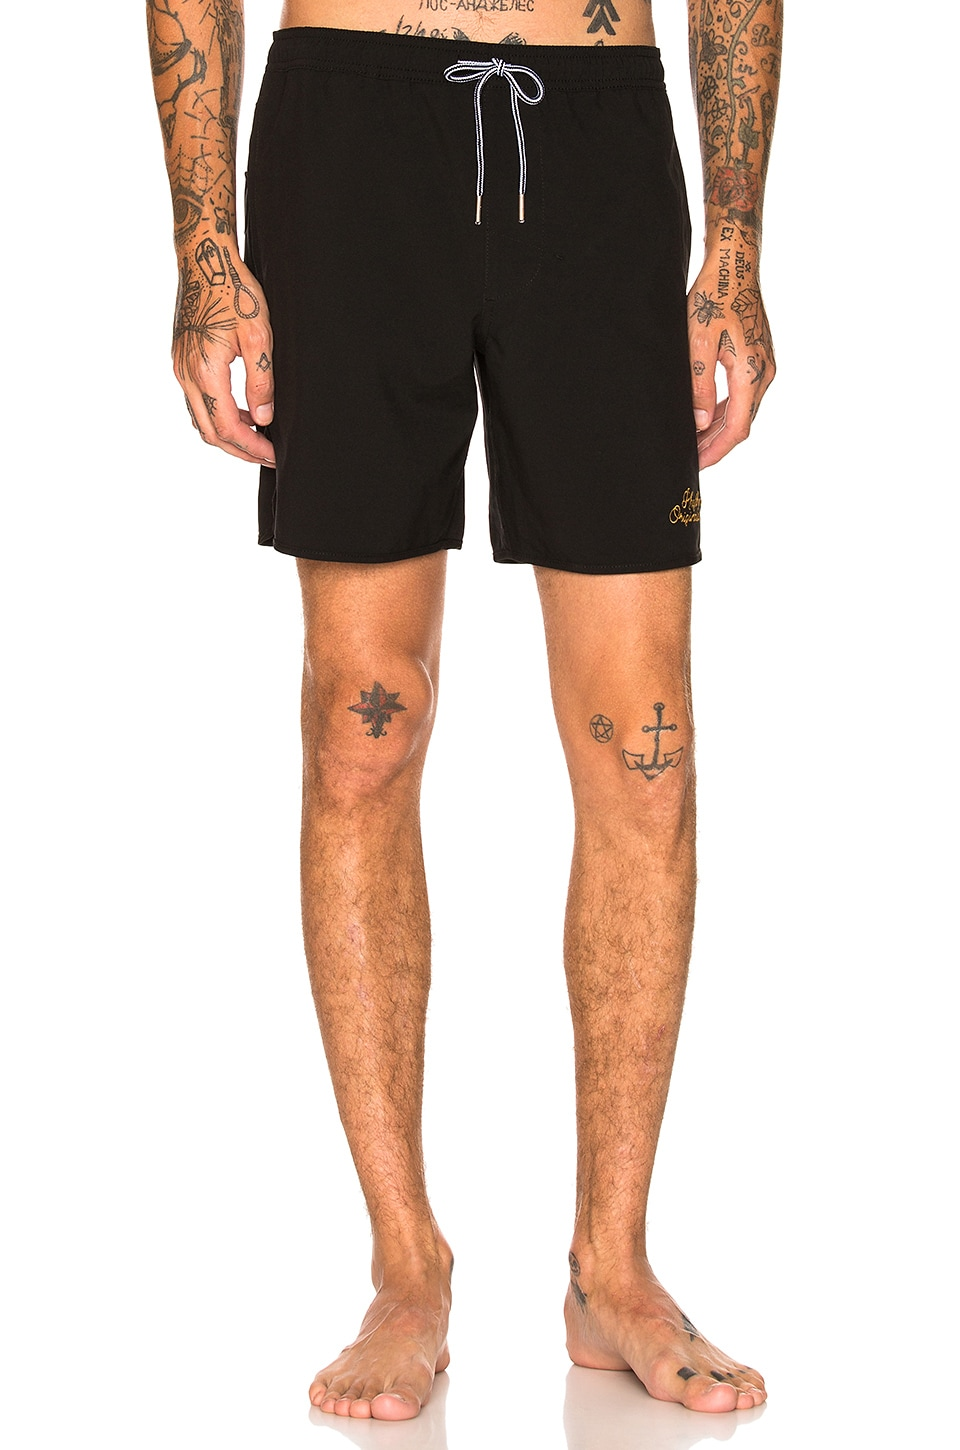 Rhythm Black Label Beach Short in Black